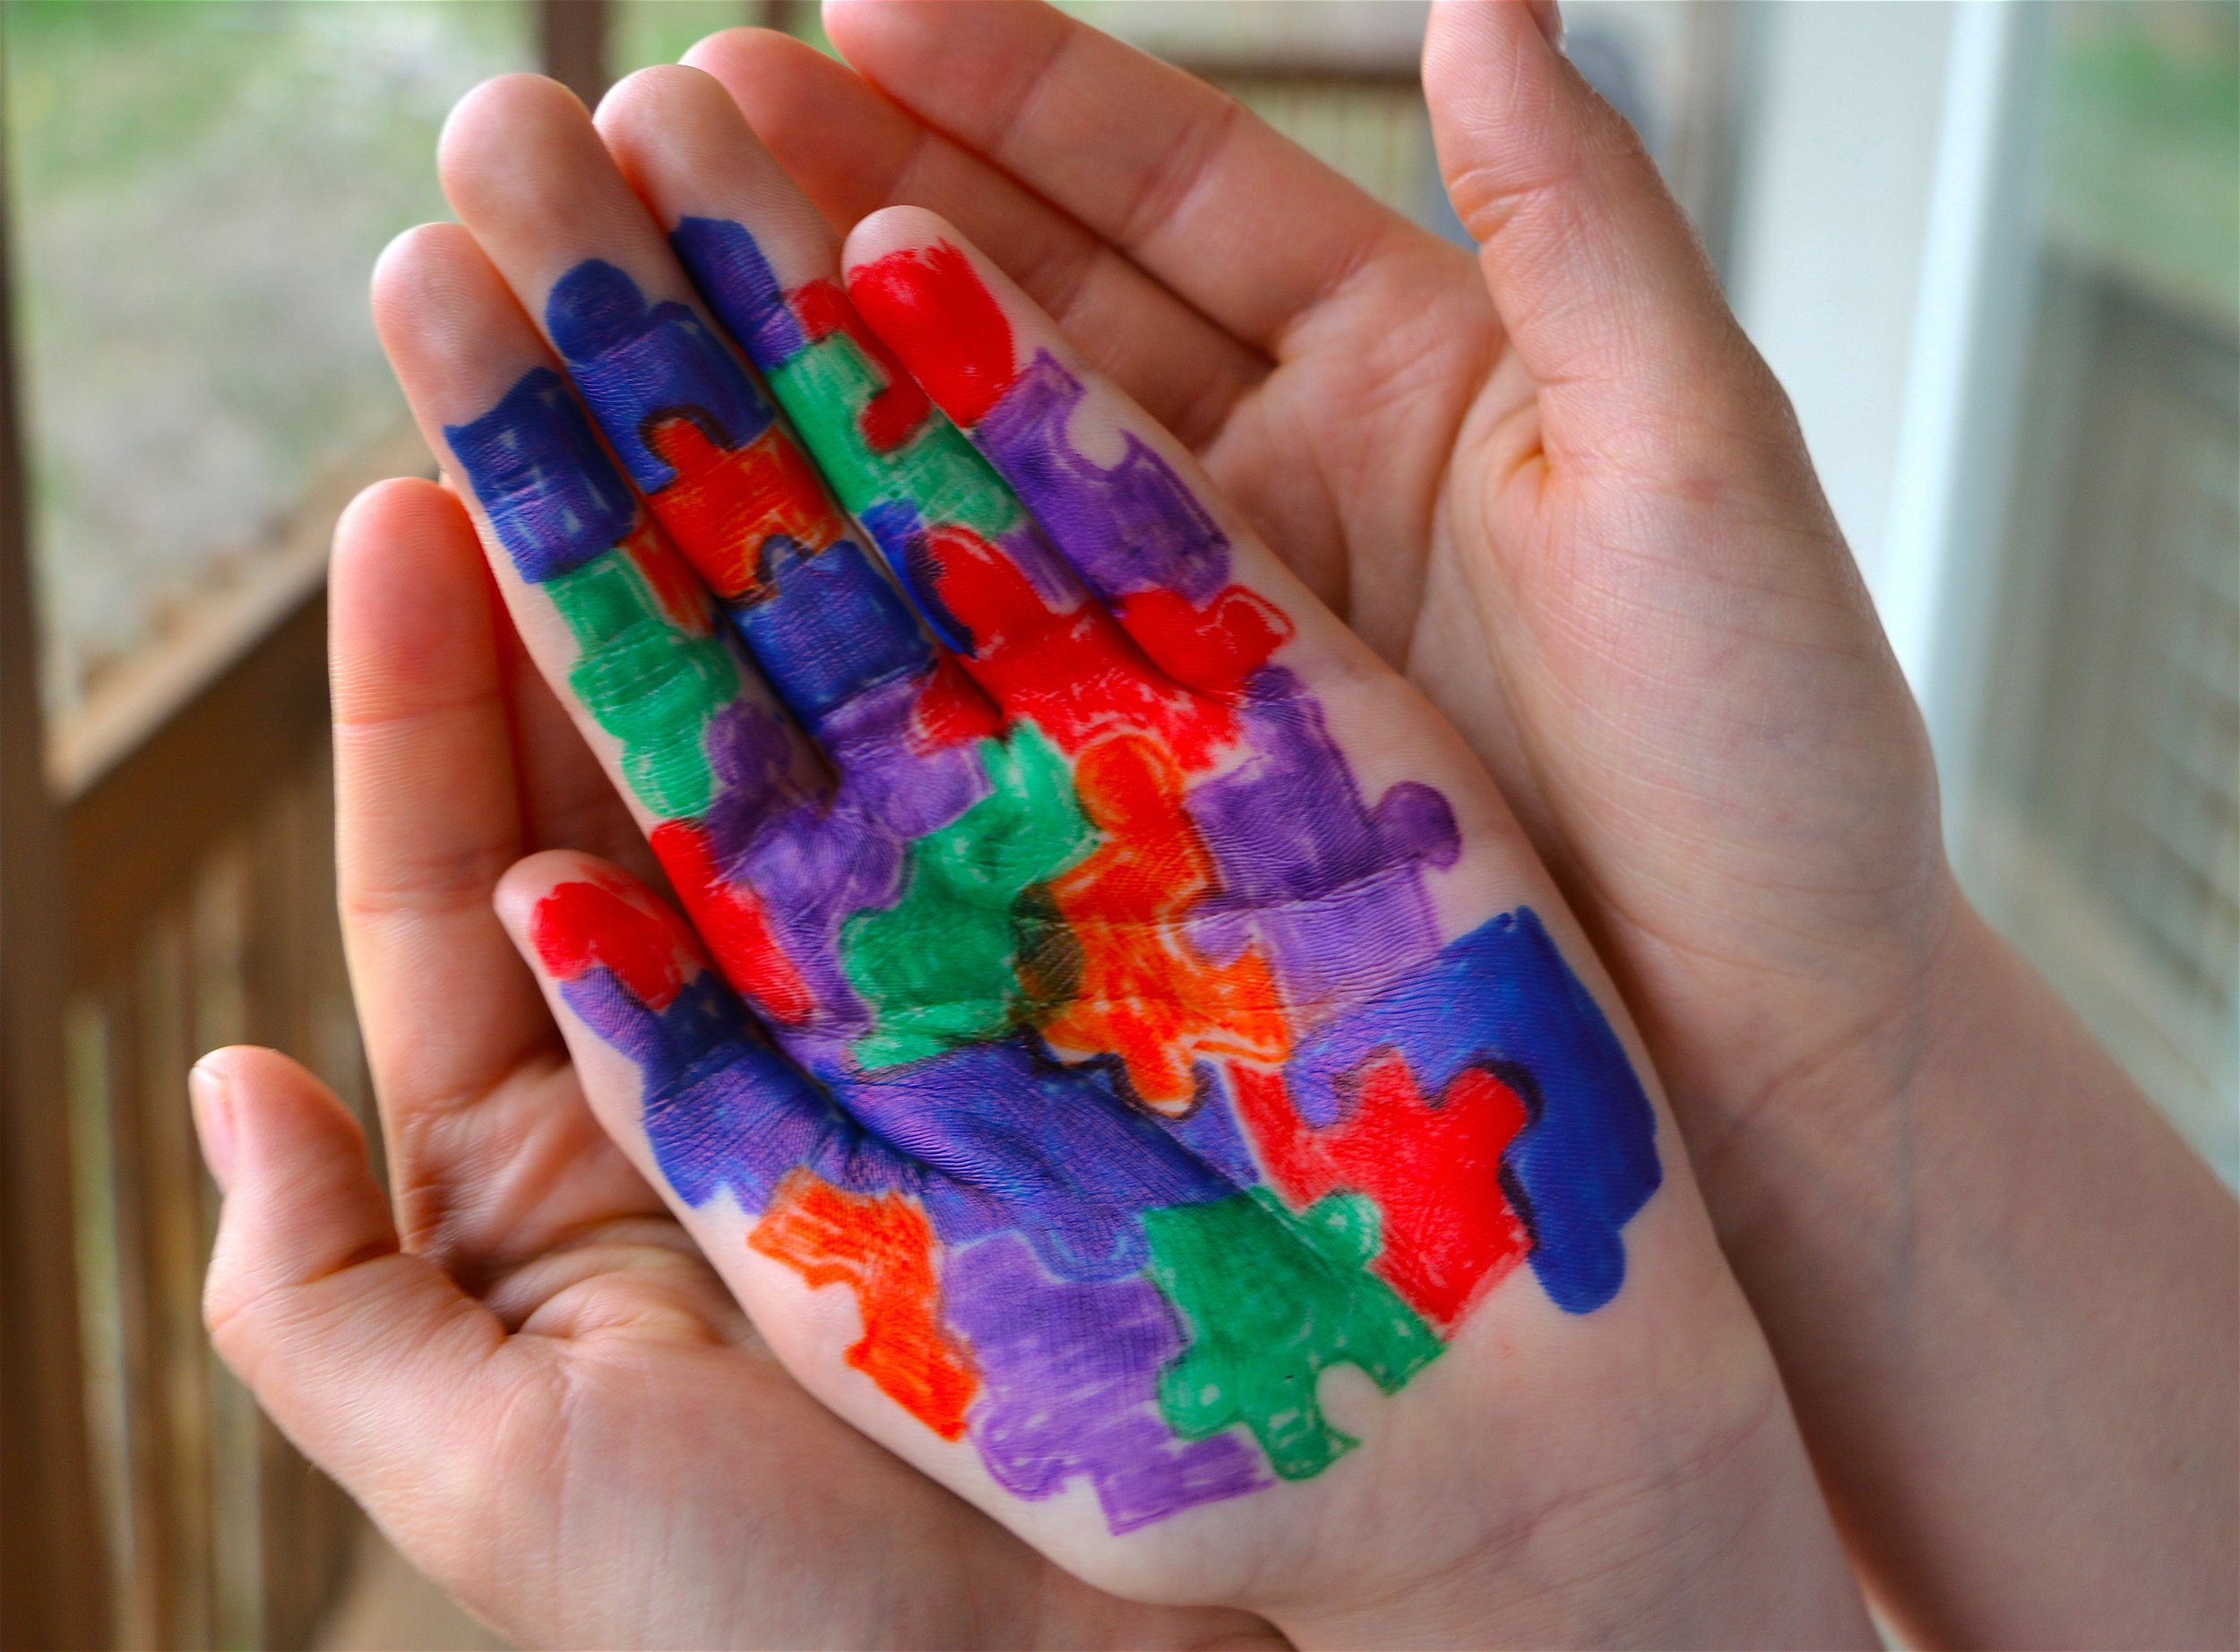 image-of-childs-hand-painted-for-autism-awareness-cupped-in-a-mothers-hands_t20_e8lNXo.jpg